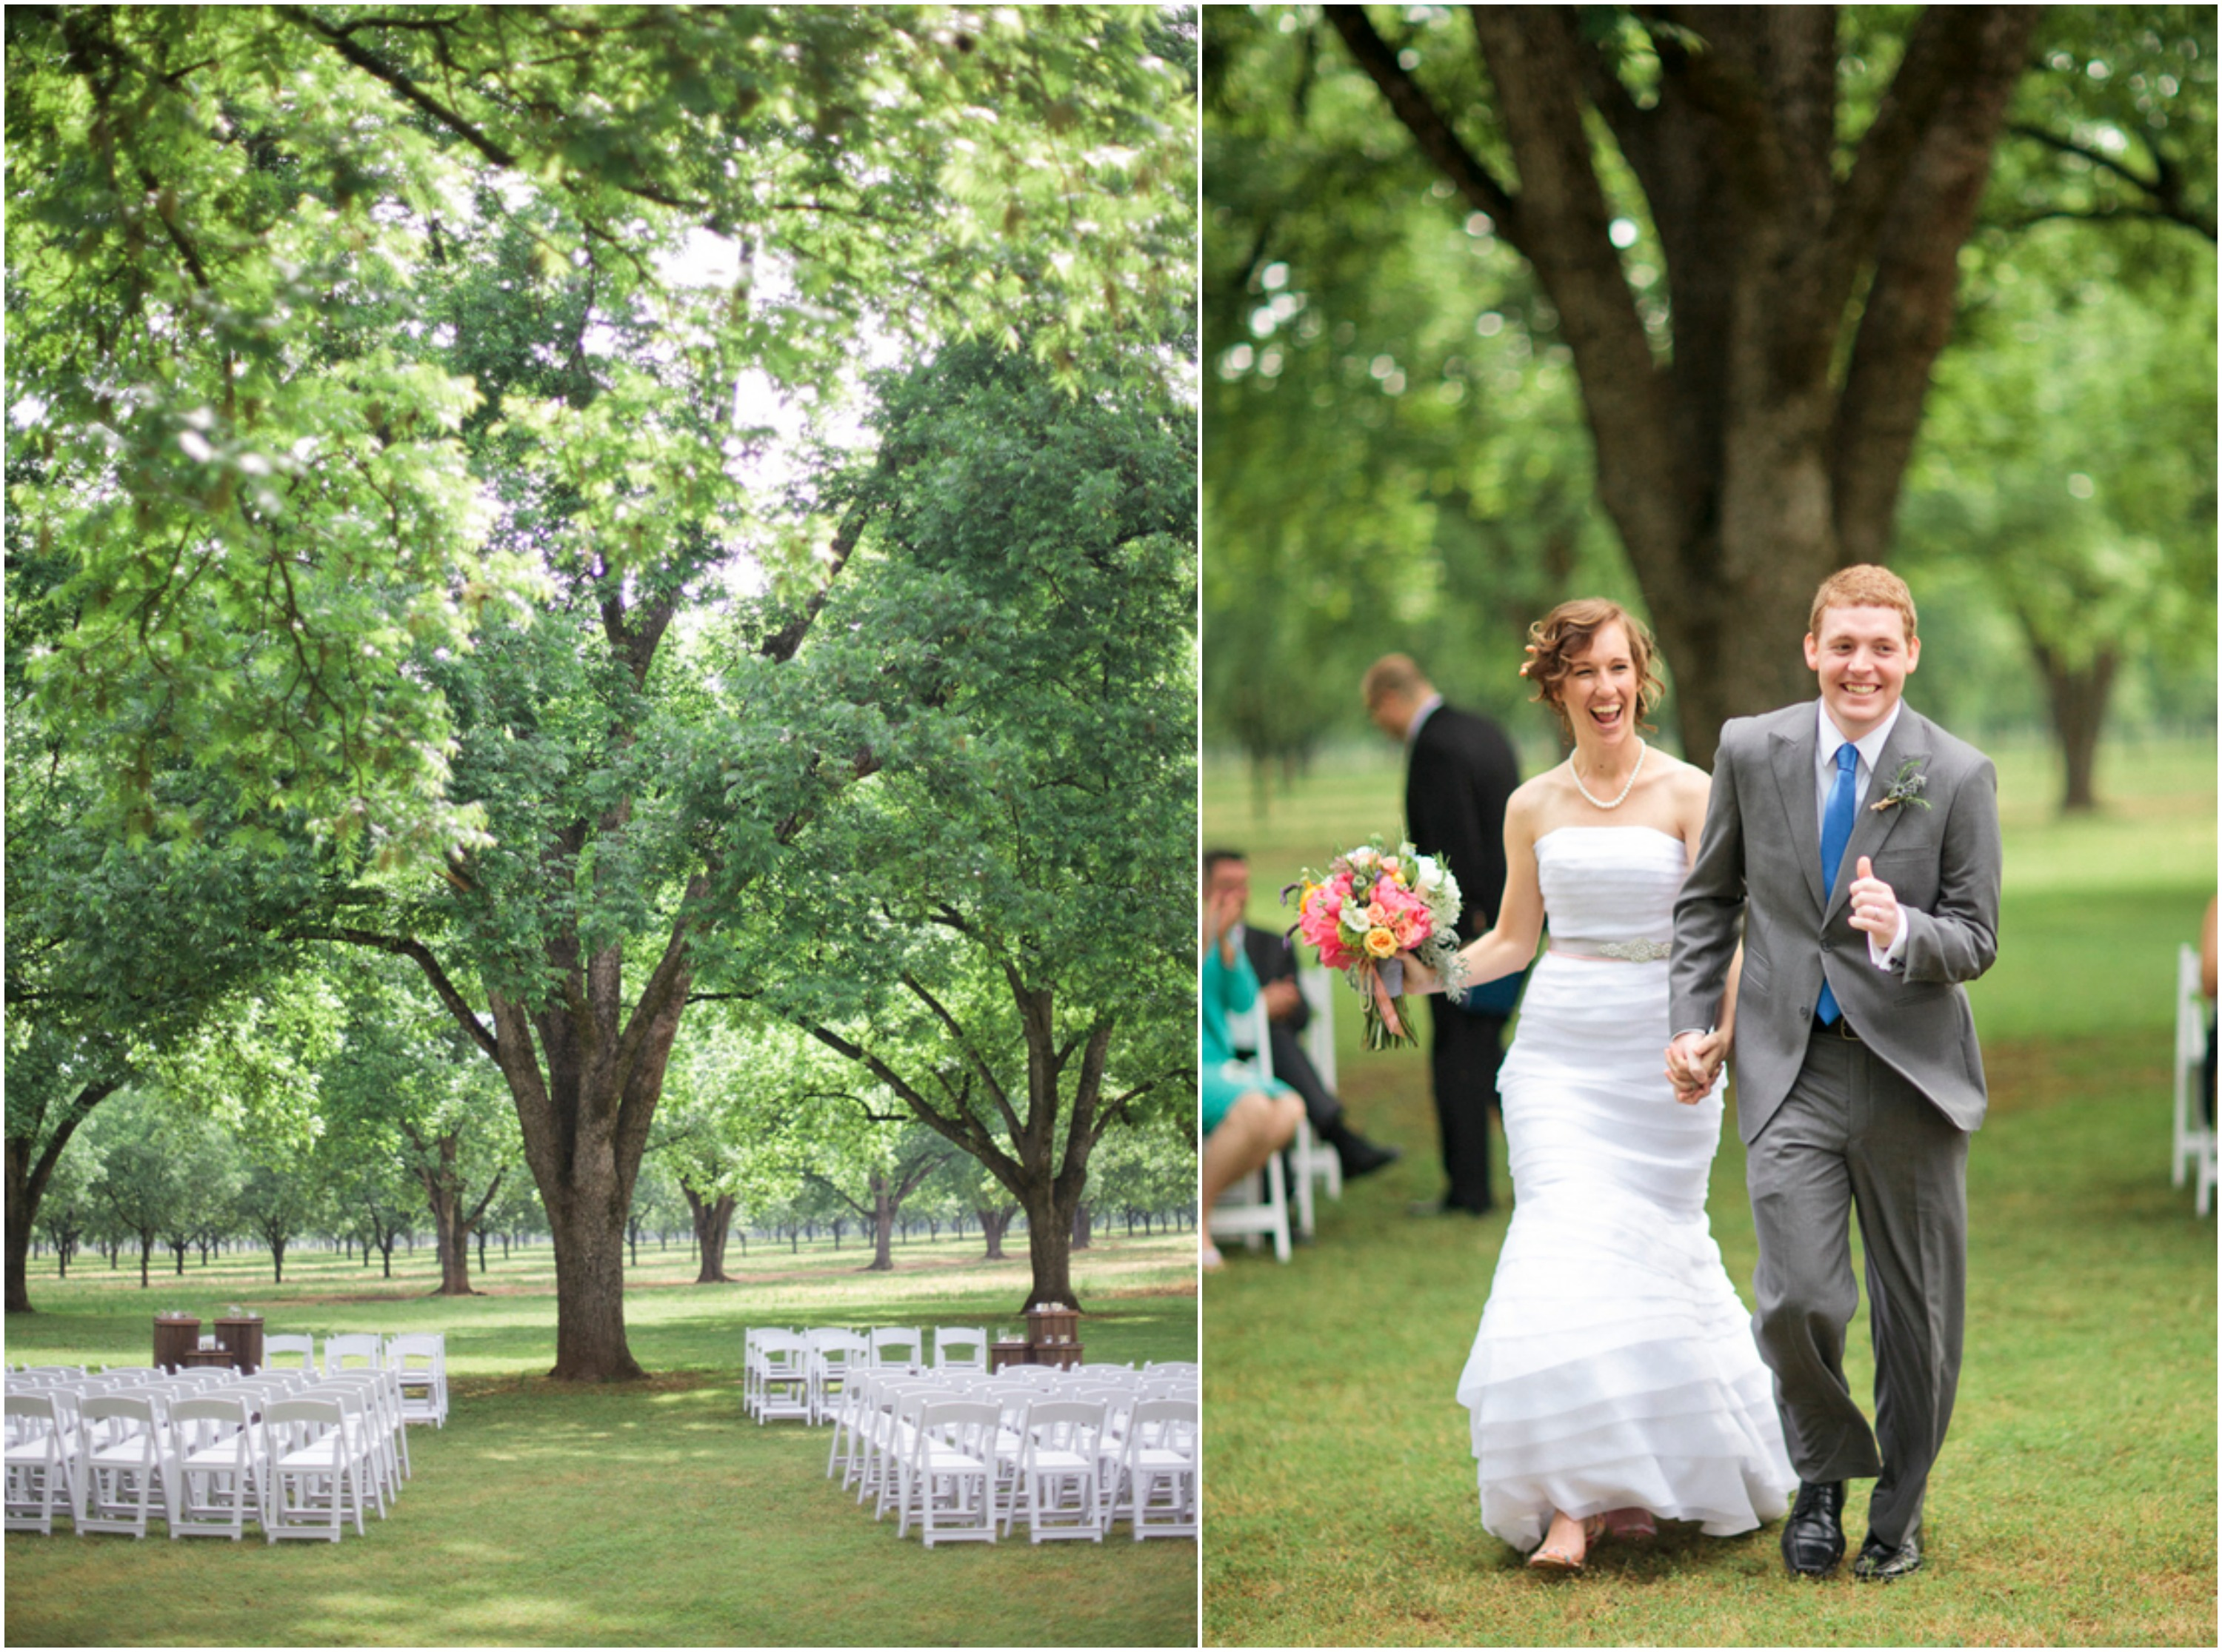 Outdoor Southern Rustic Wedding  Rustic Wedding Chic